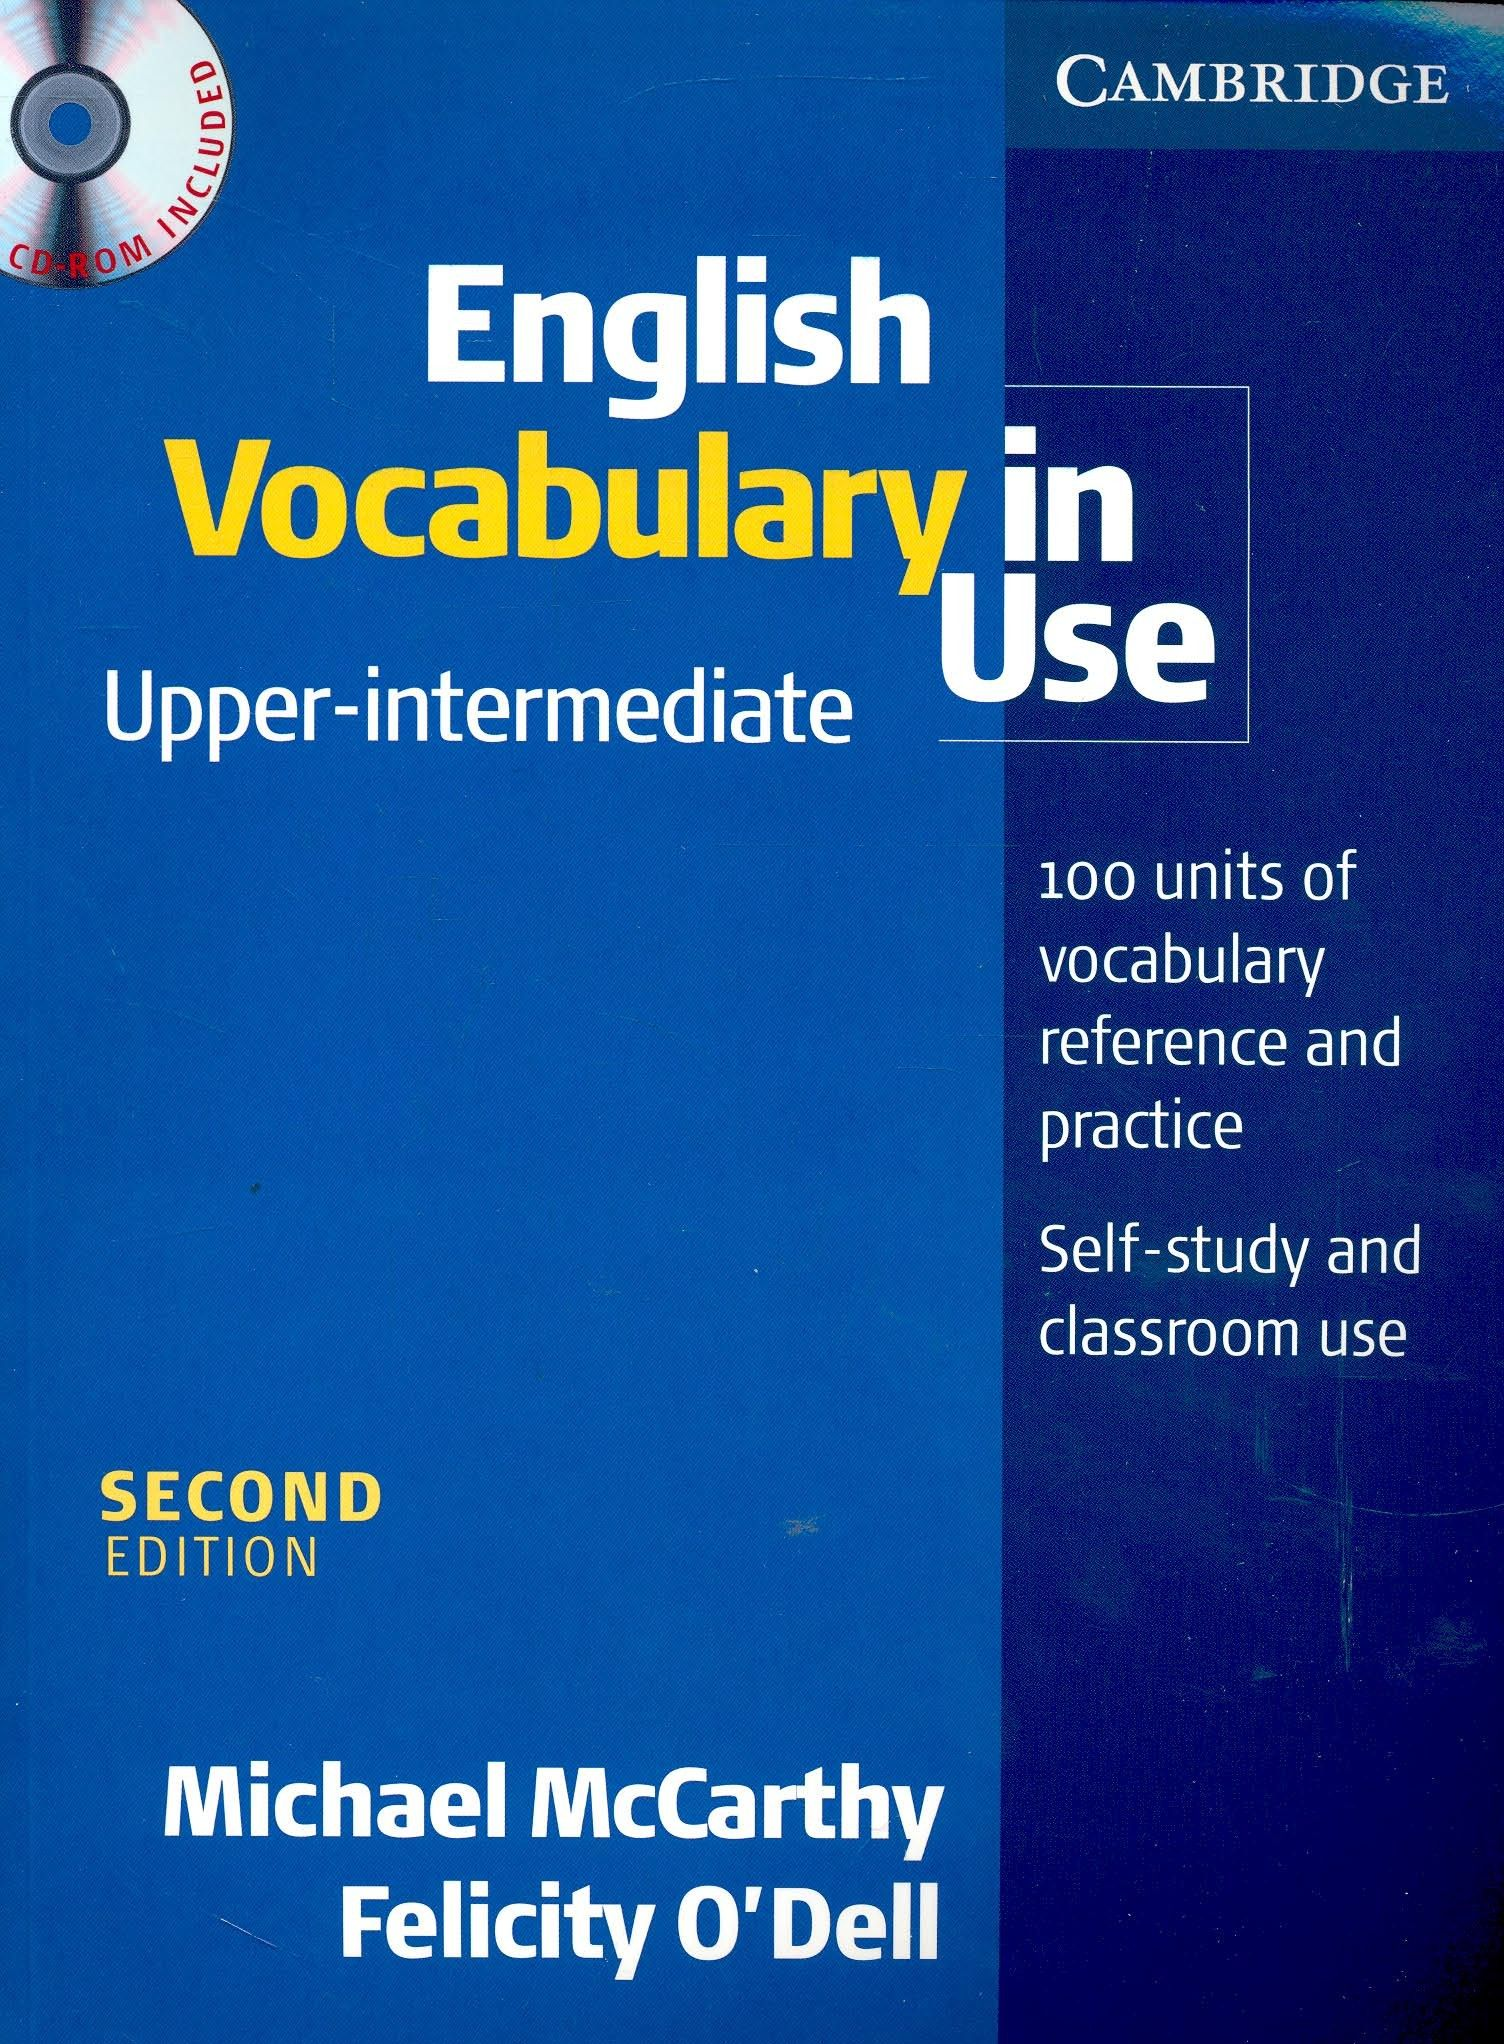 self study essay cambridge vocabulary for ielts advanced band  cambridge vocabulary for ielts advanced band 6 5 pdf audio cd english vocabulary in use upper